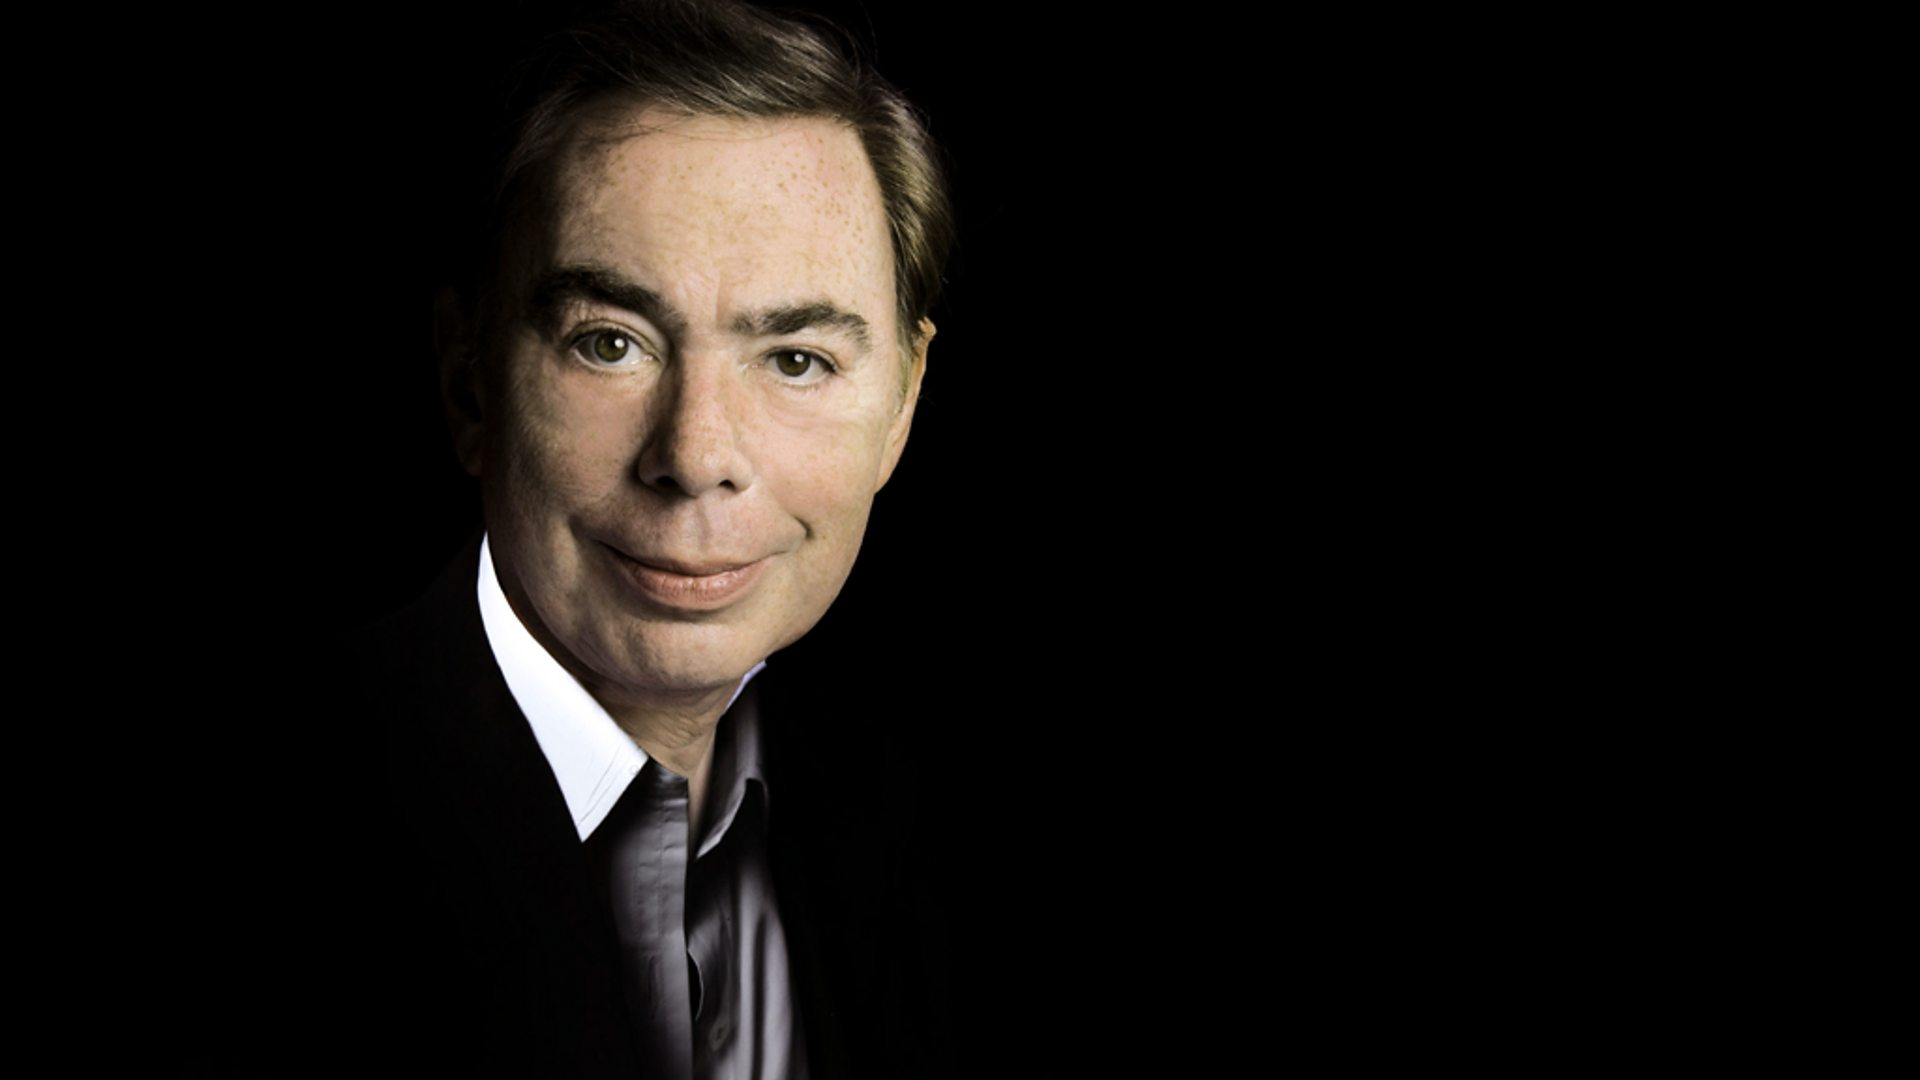 Andrew Lloyd Webber - richest musicians in the world